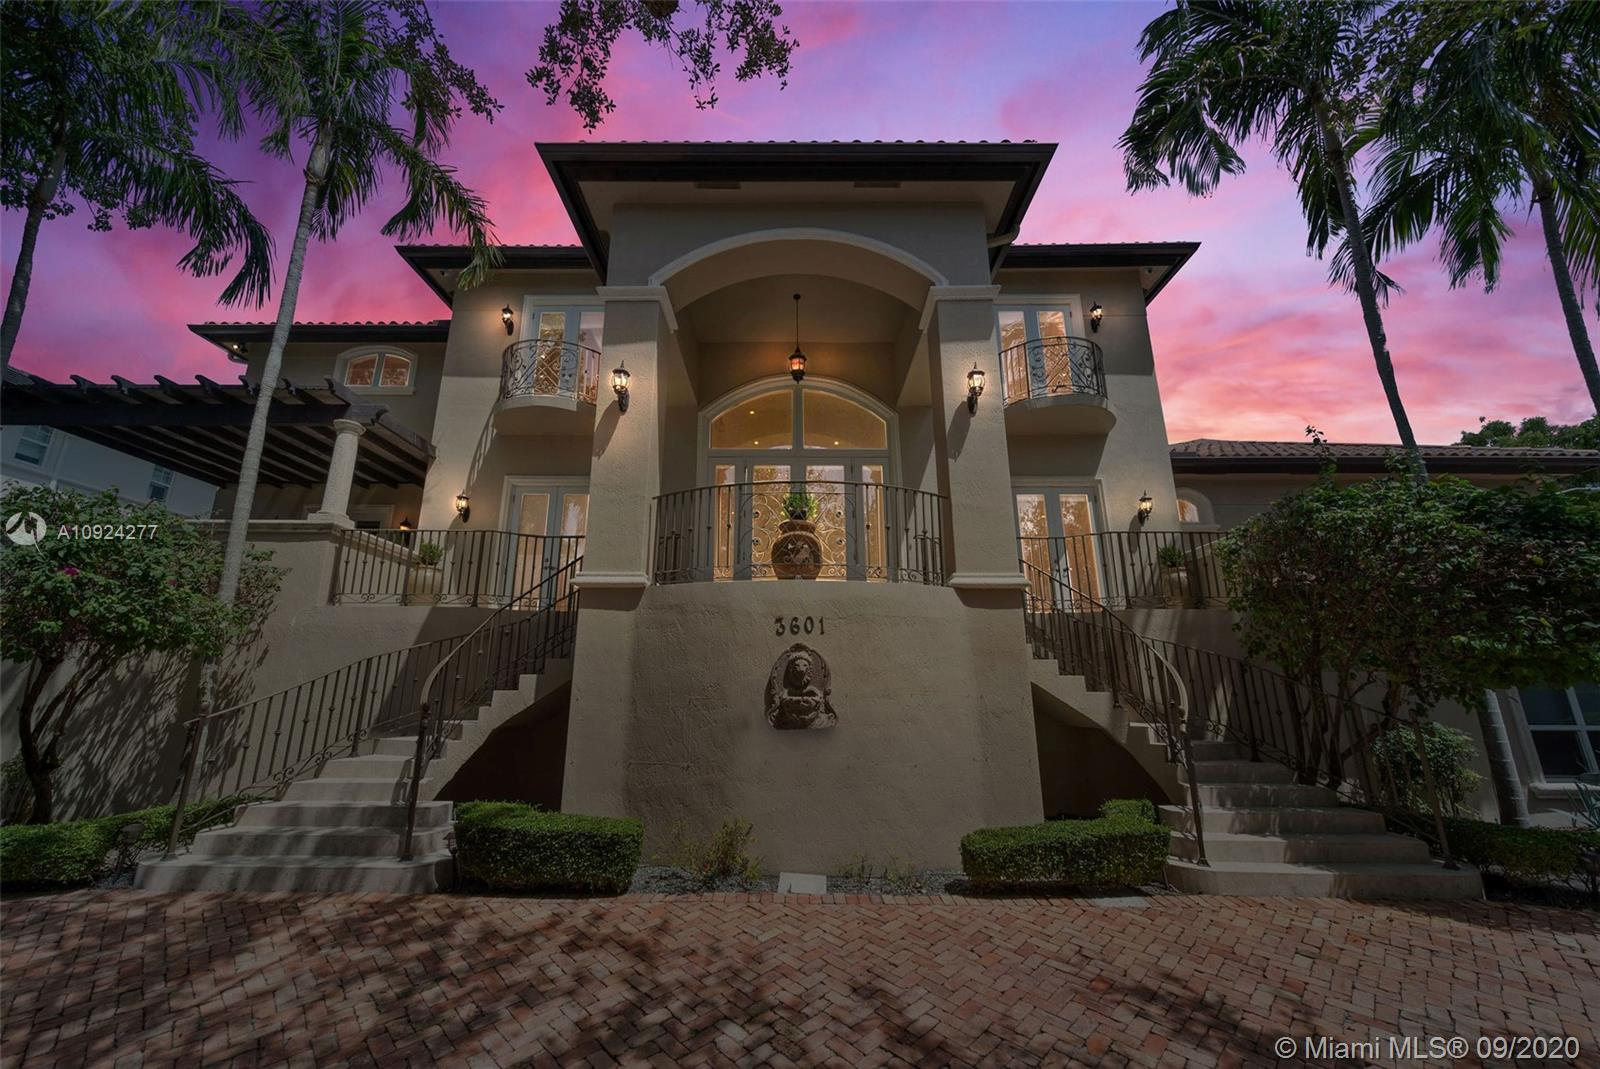 """Located w/in 24/7 guard-gated enclave of Entrada Estates. No other home in Miami epitomizes the lifestyle and functionality of floor plan as does this property!  Property features SPACE – almost 21,000 sq. ft. in total including unique """"basement"""" area built-out with full second kitchen, theatre, gym, lounge, playroom, family room, & garage.  All electric sockets on this level located above flood lines and pump station in place to extract water.  Main house (insurable living area) starts on 2nd floor up to 3rd floor.  Walk/bike to quaint Coconut Grove downtown & marinas. Special features include elevator, 26 cameras, mosquito misting, 6 new A/C units, 8-ft solid core wood doors, etc.  Great patio overlooking free-form pool w/waterfall, outdoor shower & cabana bath."""